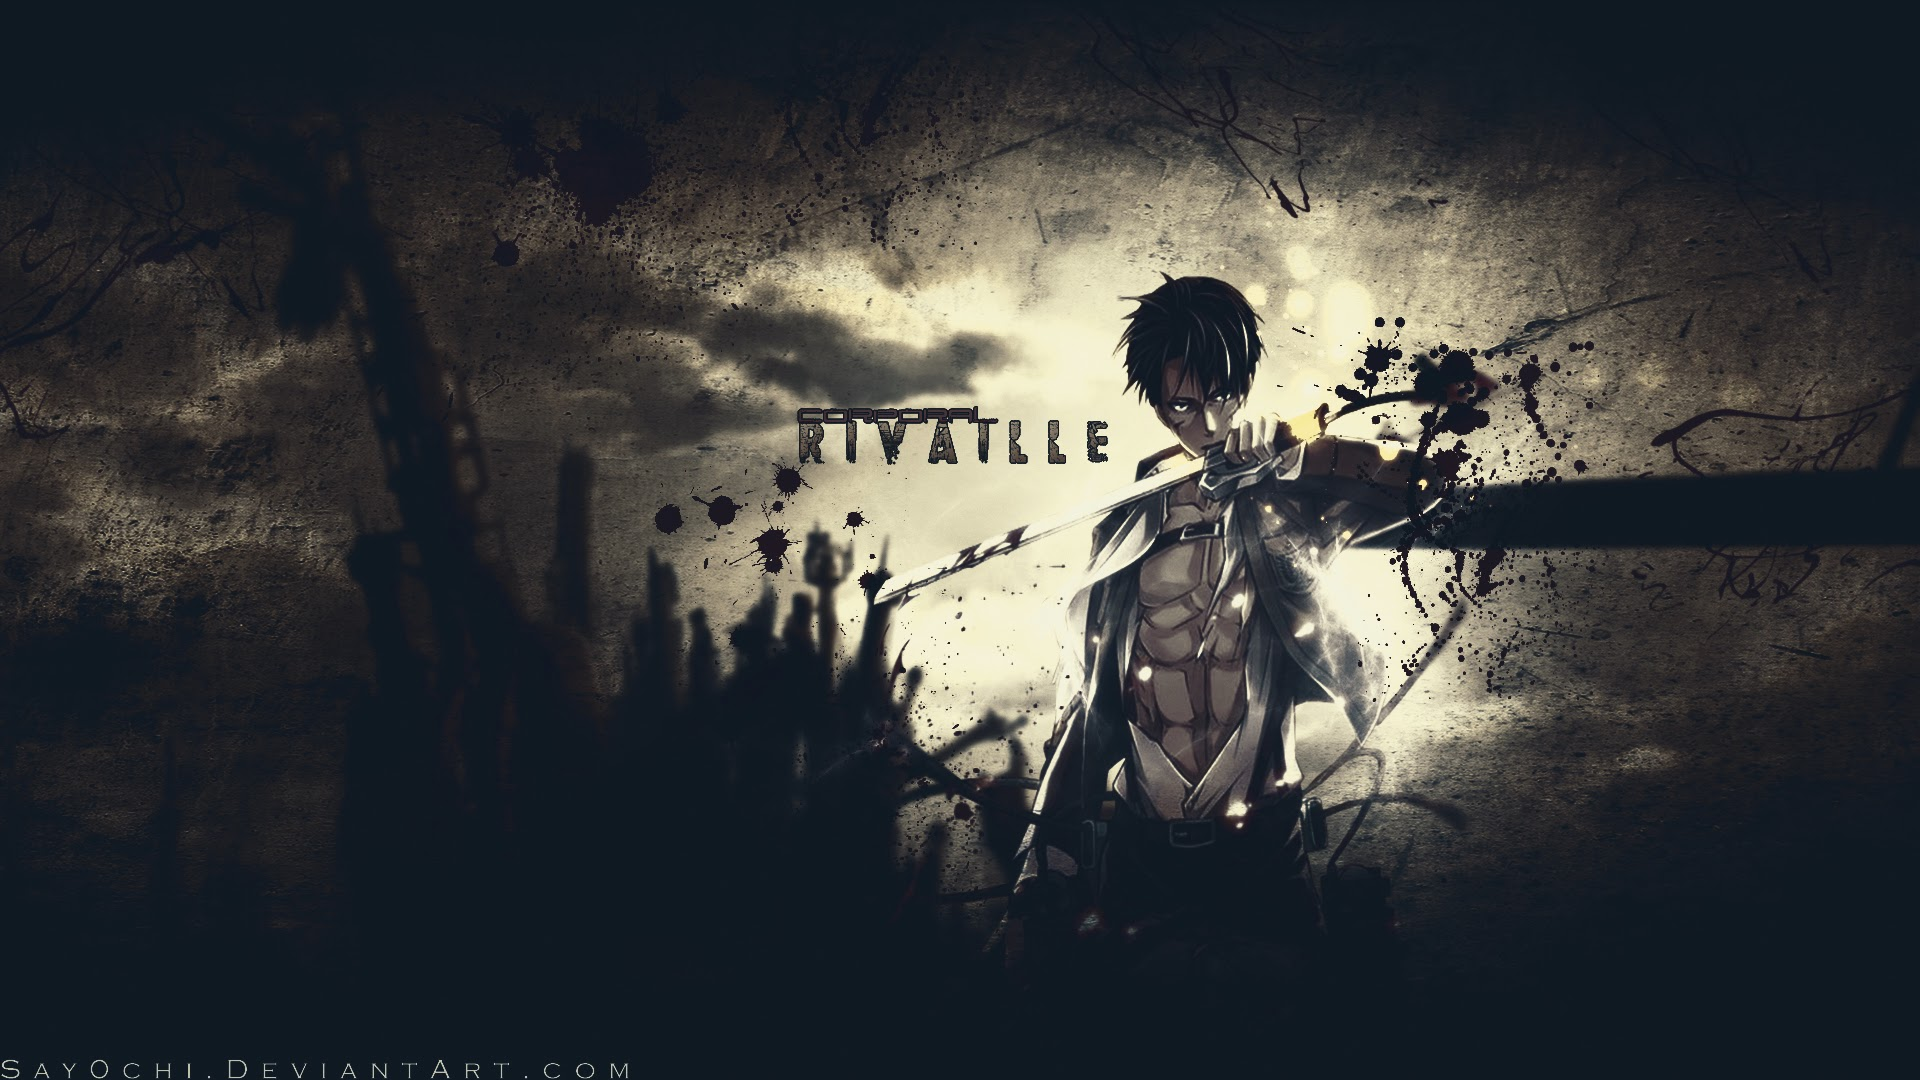 levi attack on titan shingekin no kyojin hd wallpaper 1920x1080 21jpg 1920x1080